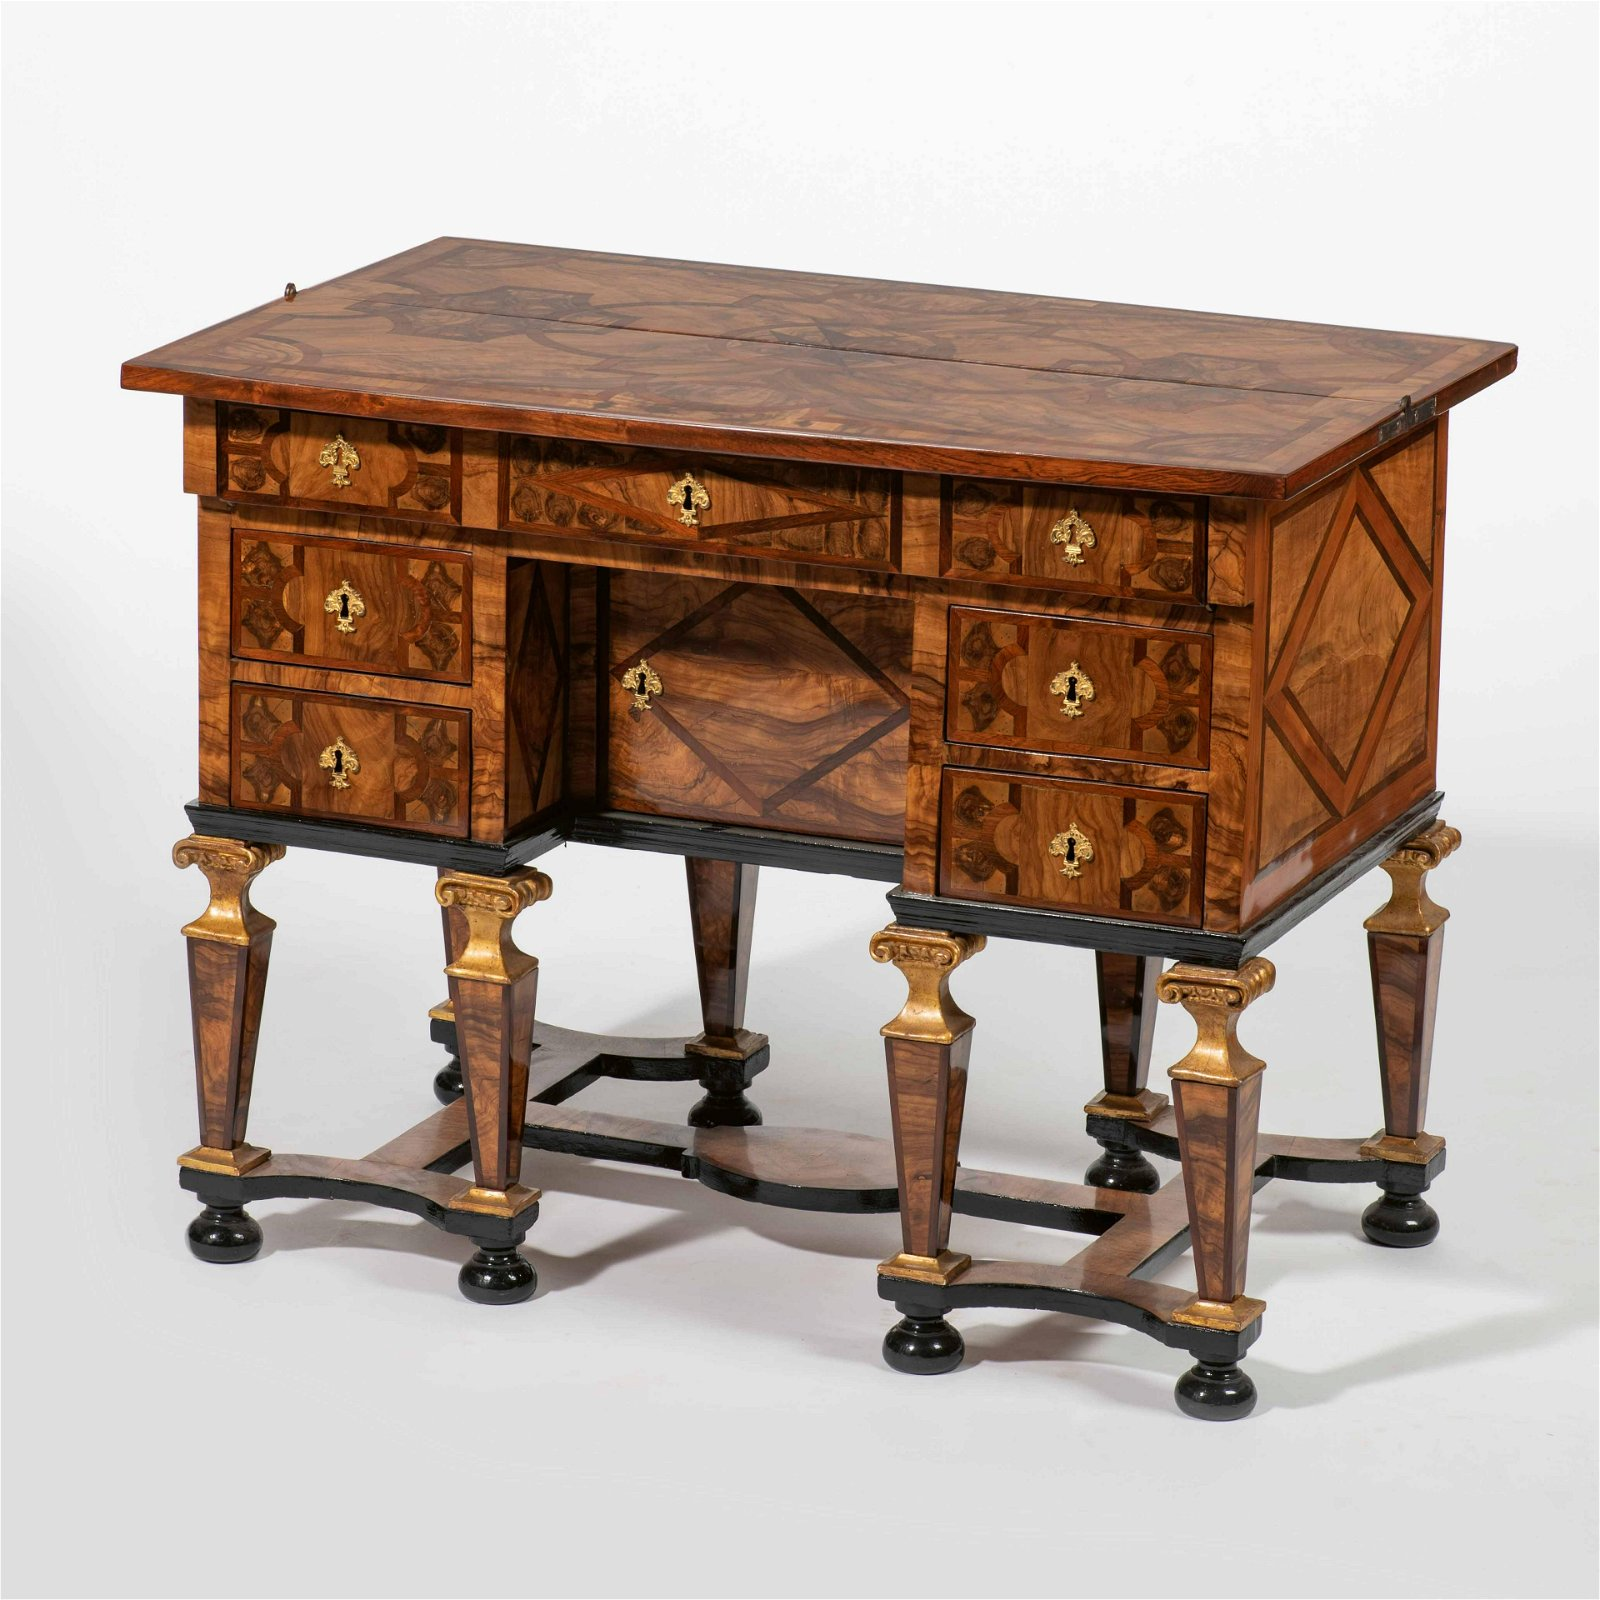 A fine Louis XIV olive and Rio rosewood marquetry